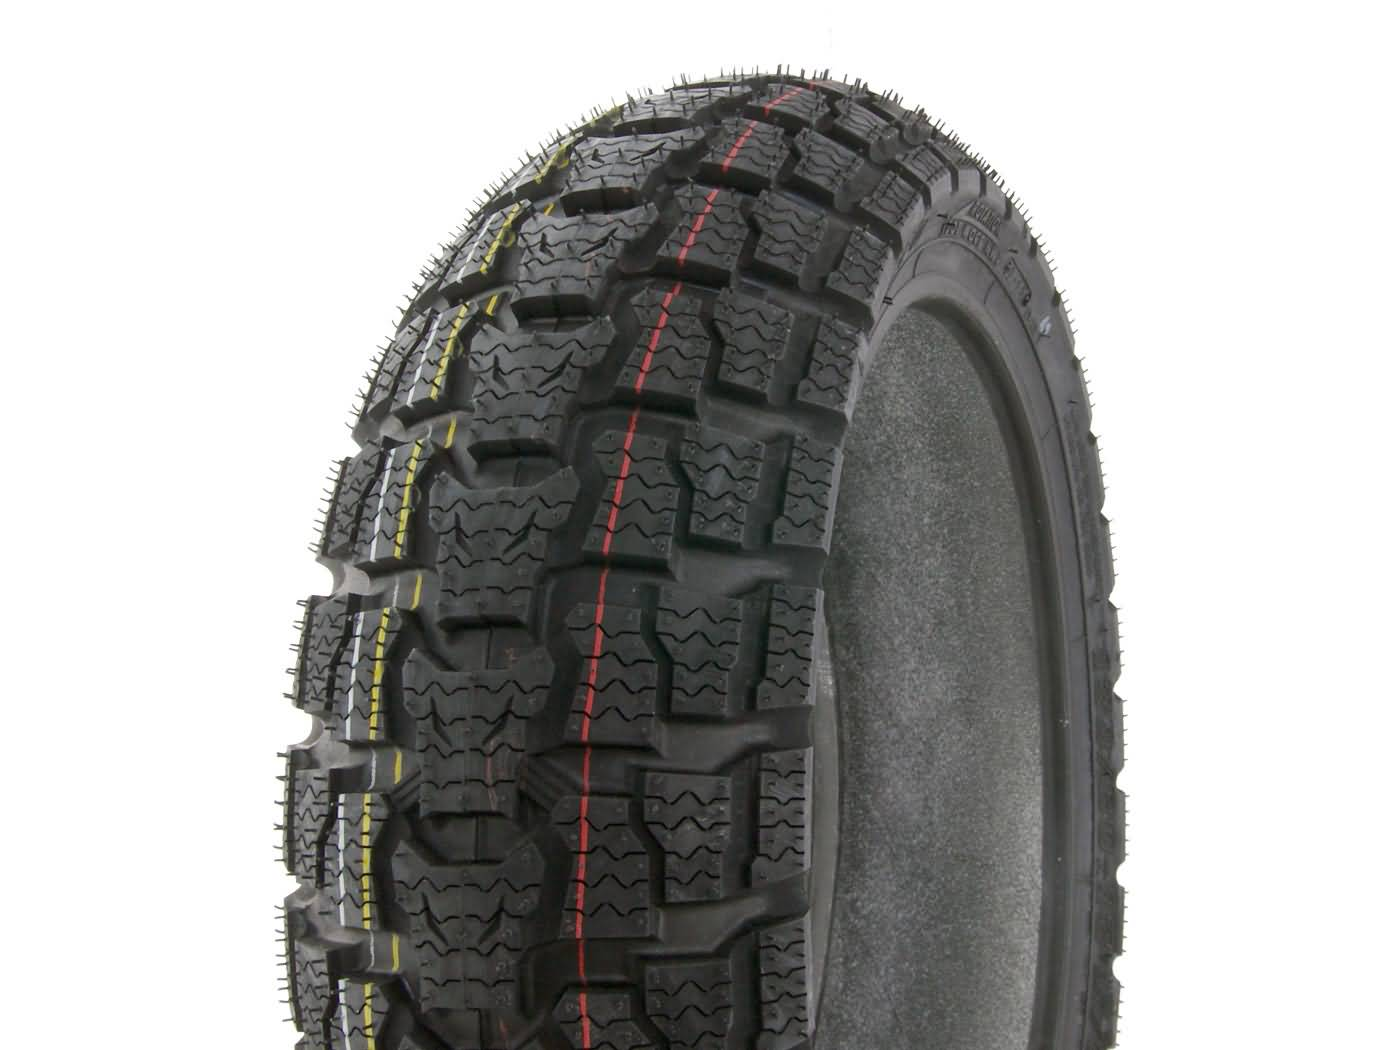 tire irc urban snow sn 26 m s mud and snow various sizes scooter parts racing planet uk. Black Bedroom Furniture Sets. Home Design Ideas